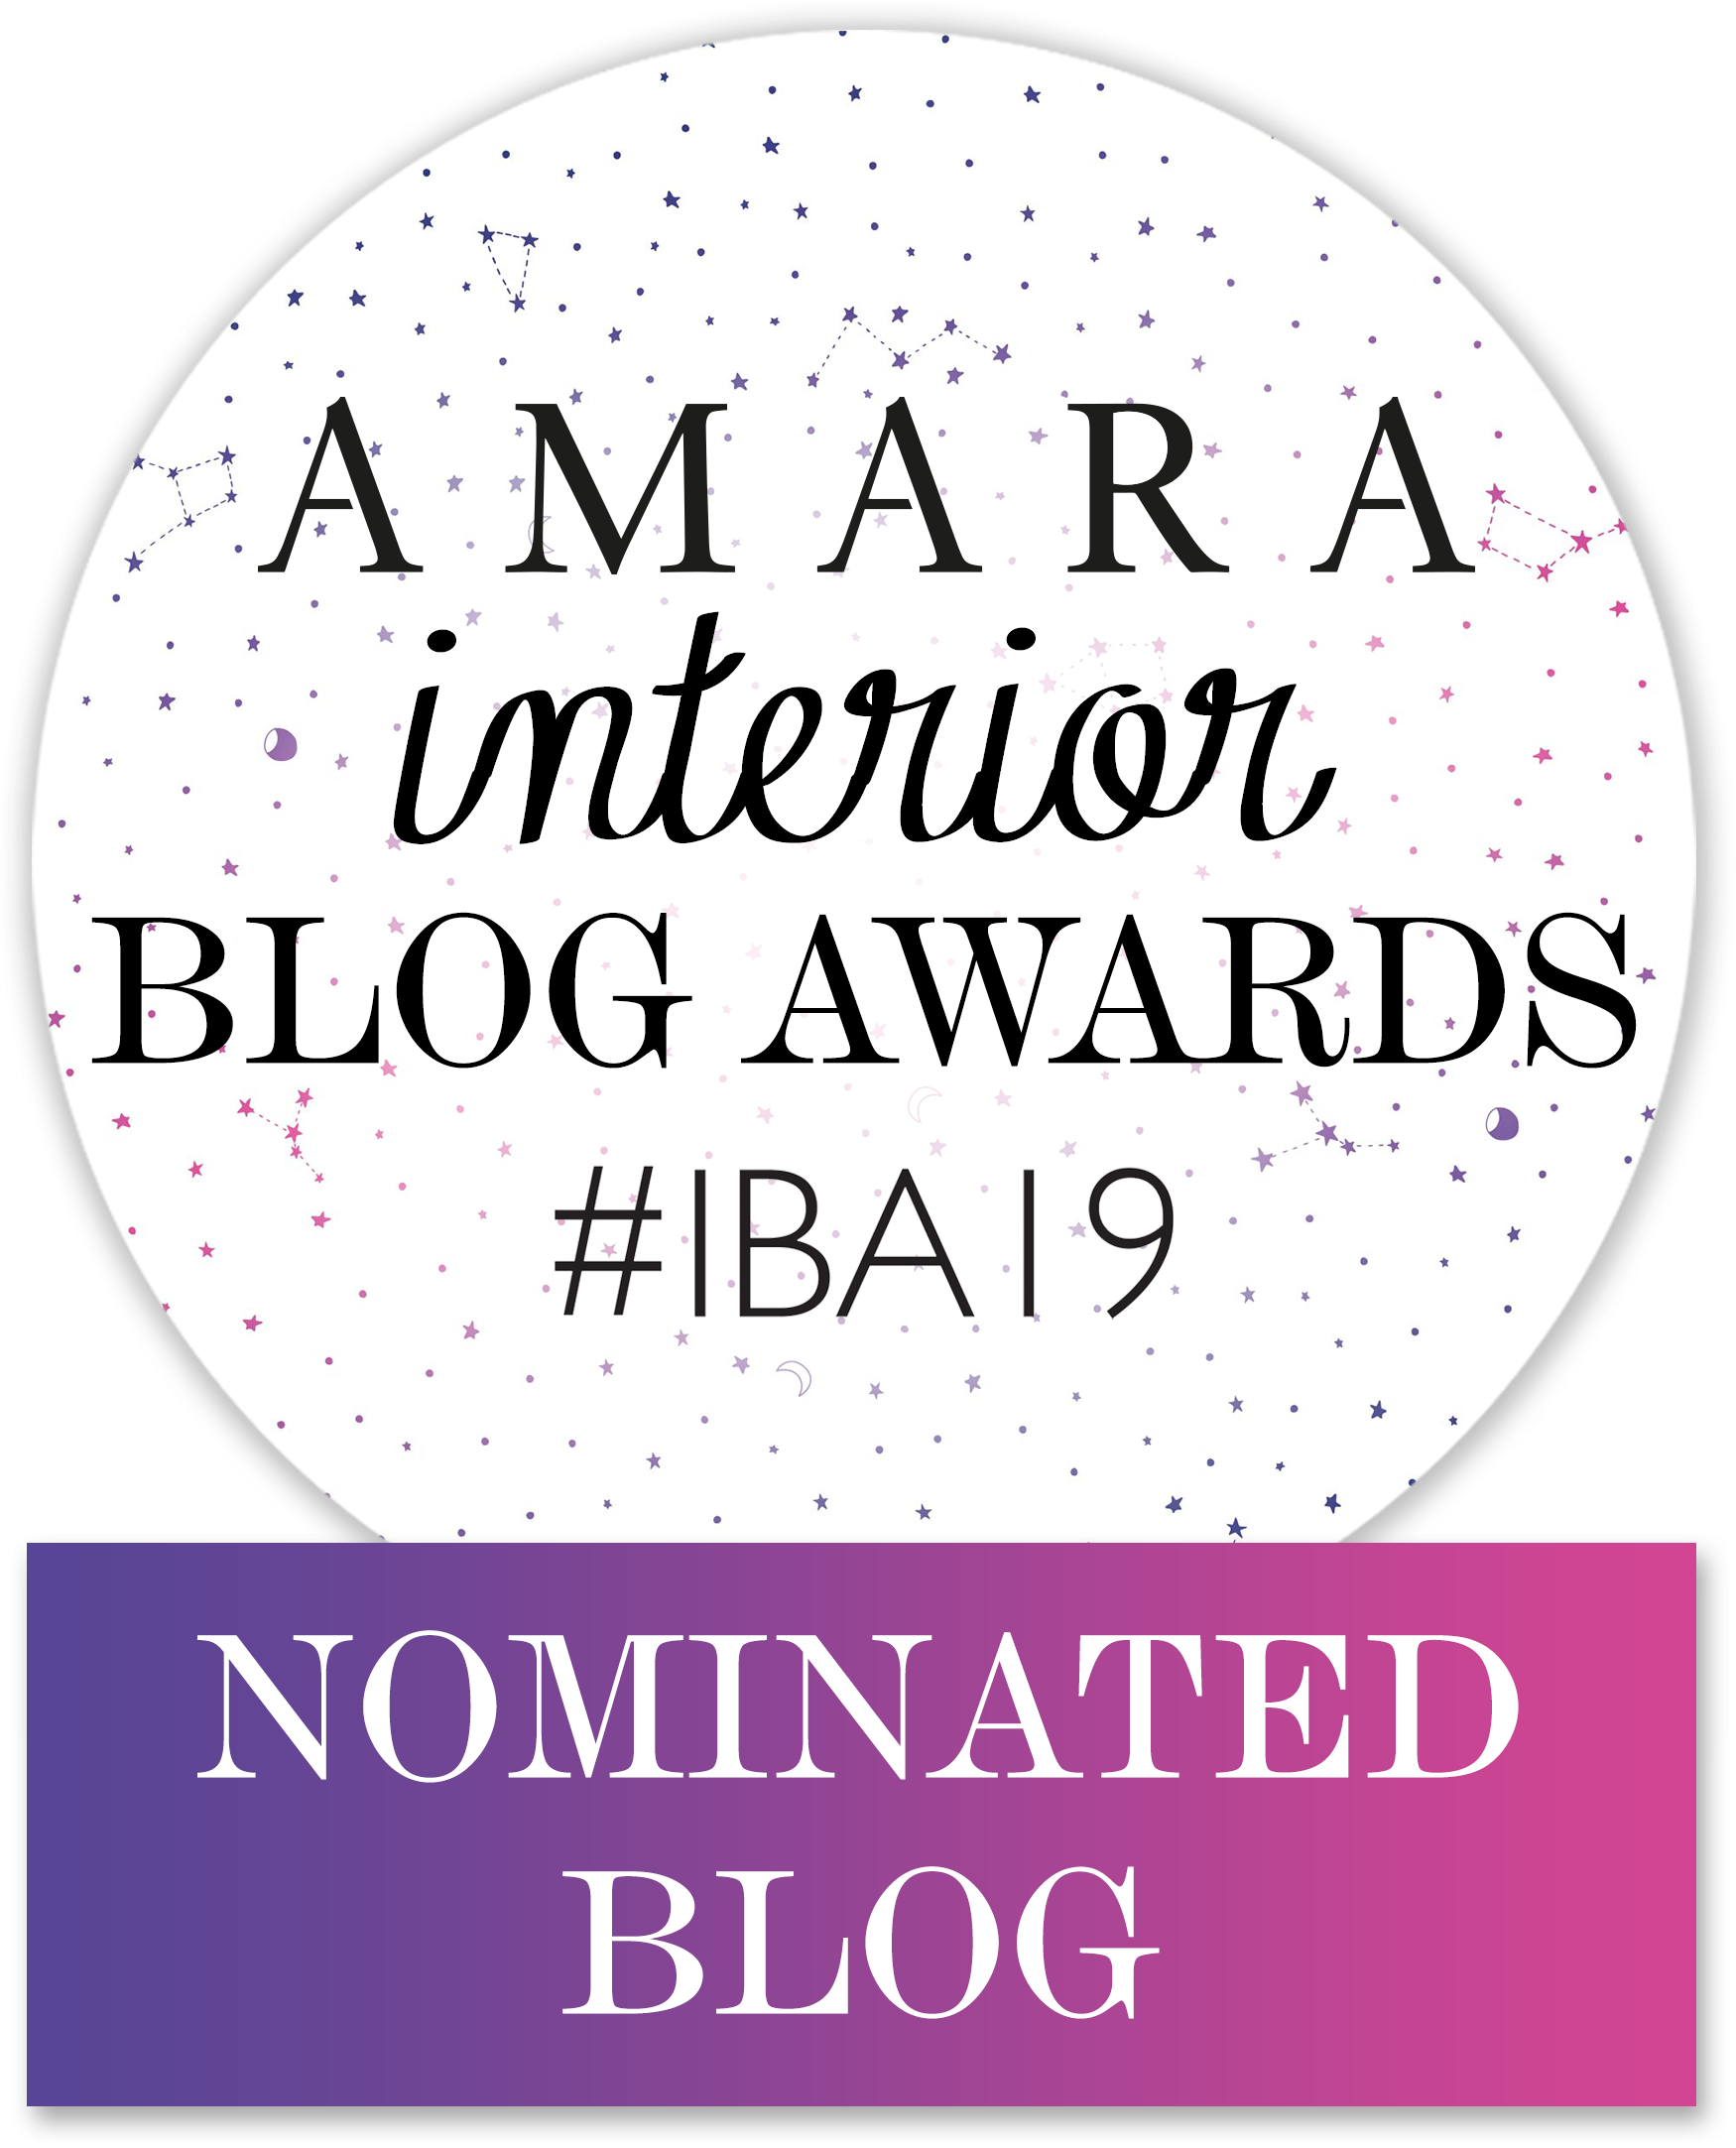 Amara Interior Blog Awards Nominated Blog